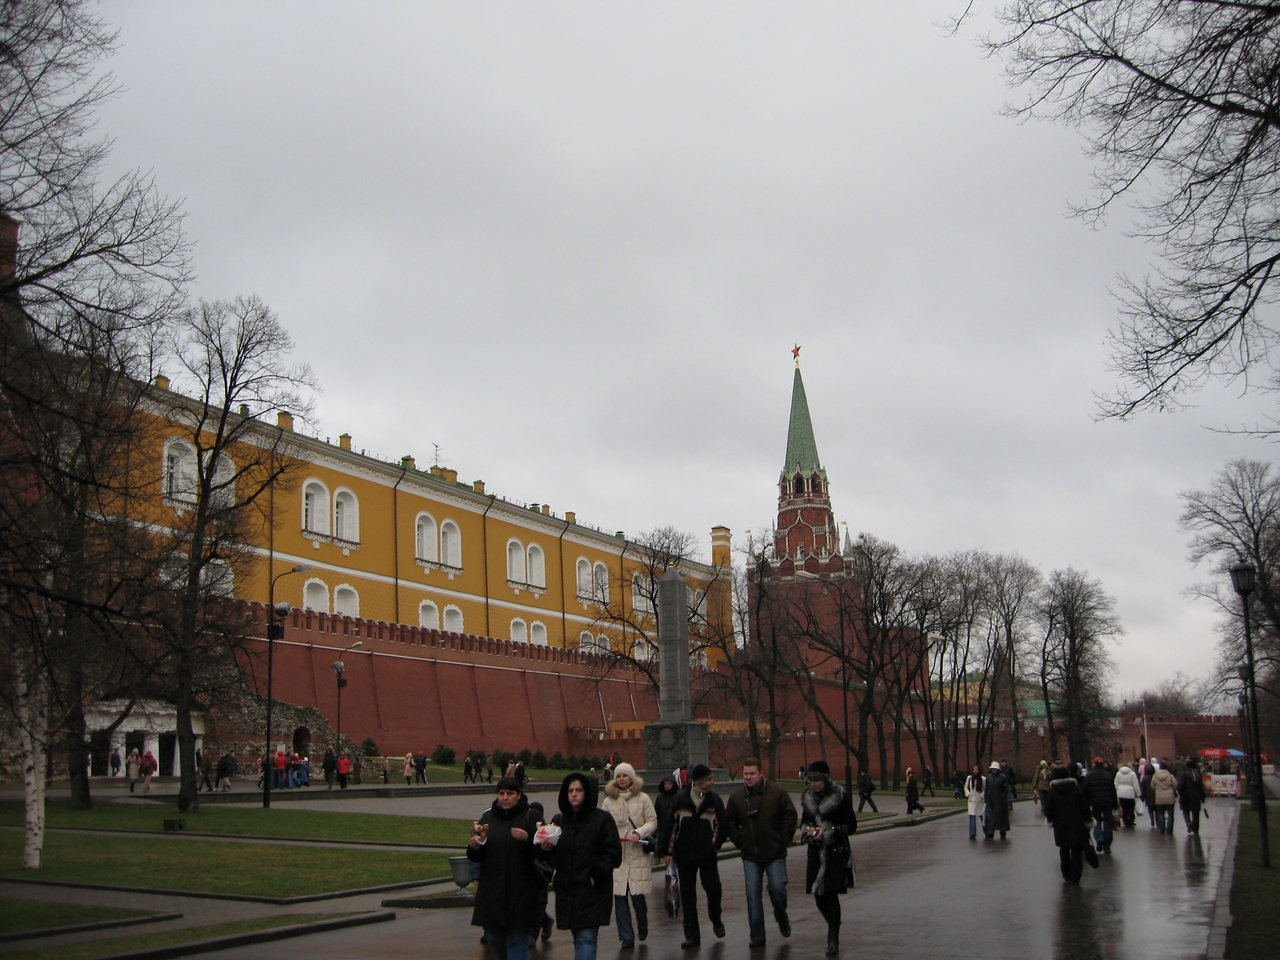 Another view of the Kremlin - just south of the Tomb of the Unknown Soldier.